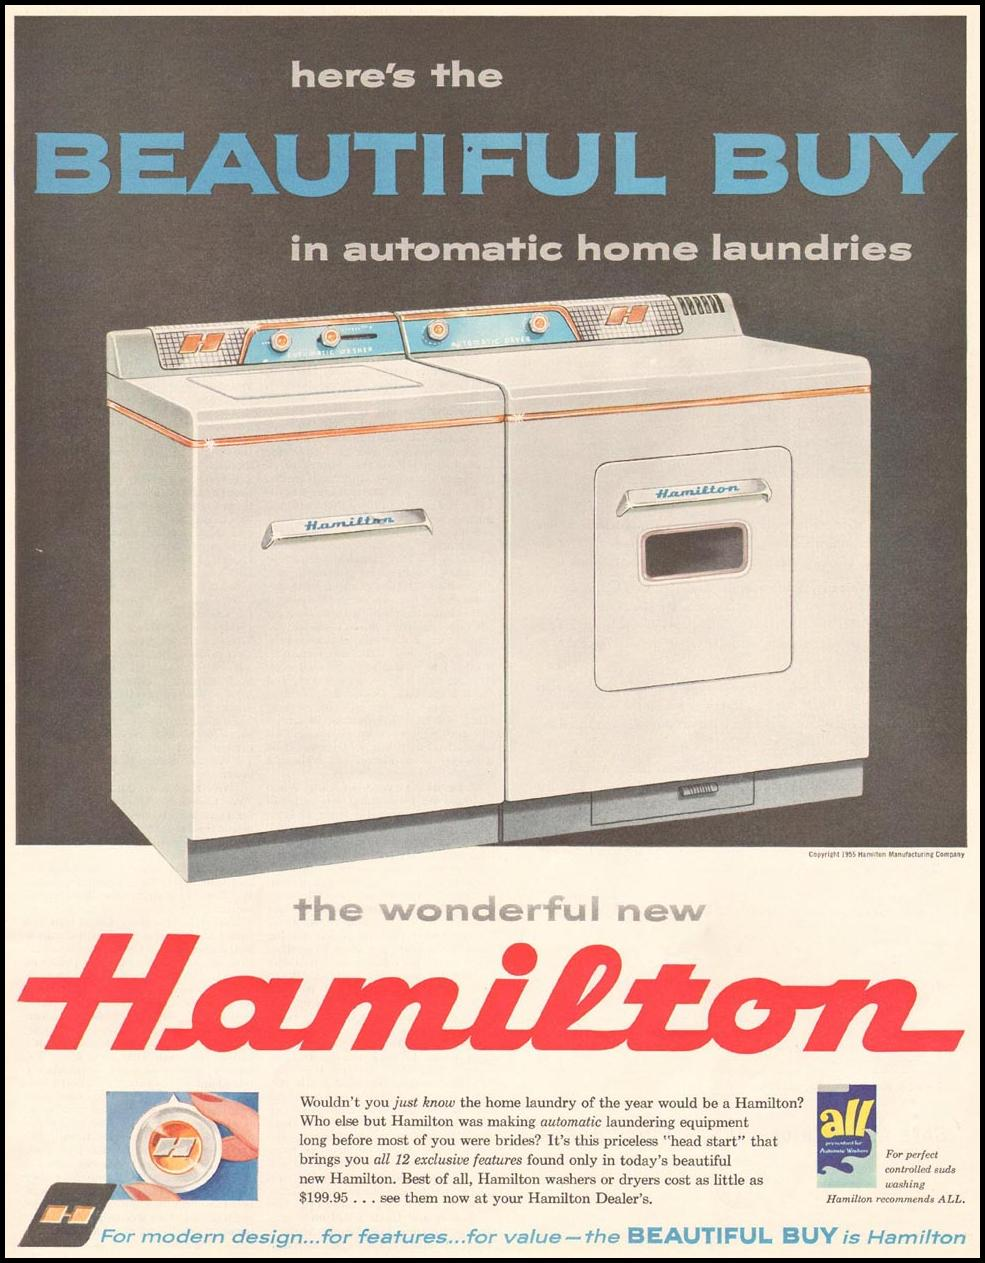 HAMILTON WASHING MACHINES